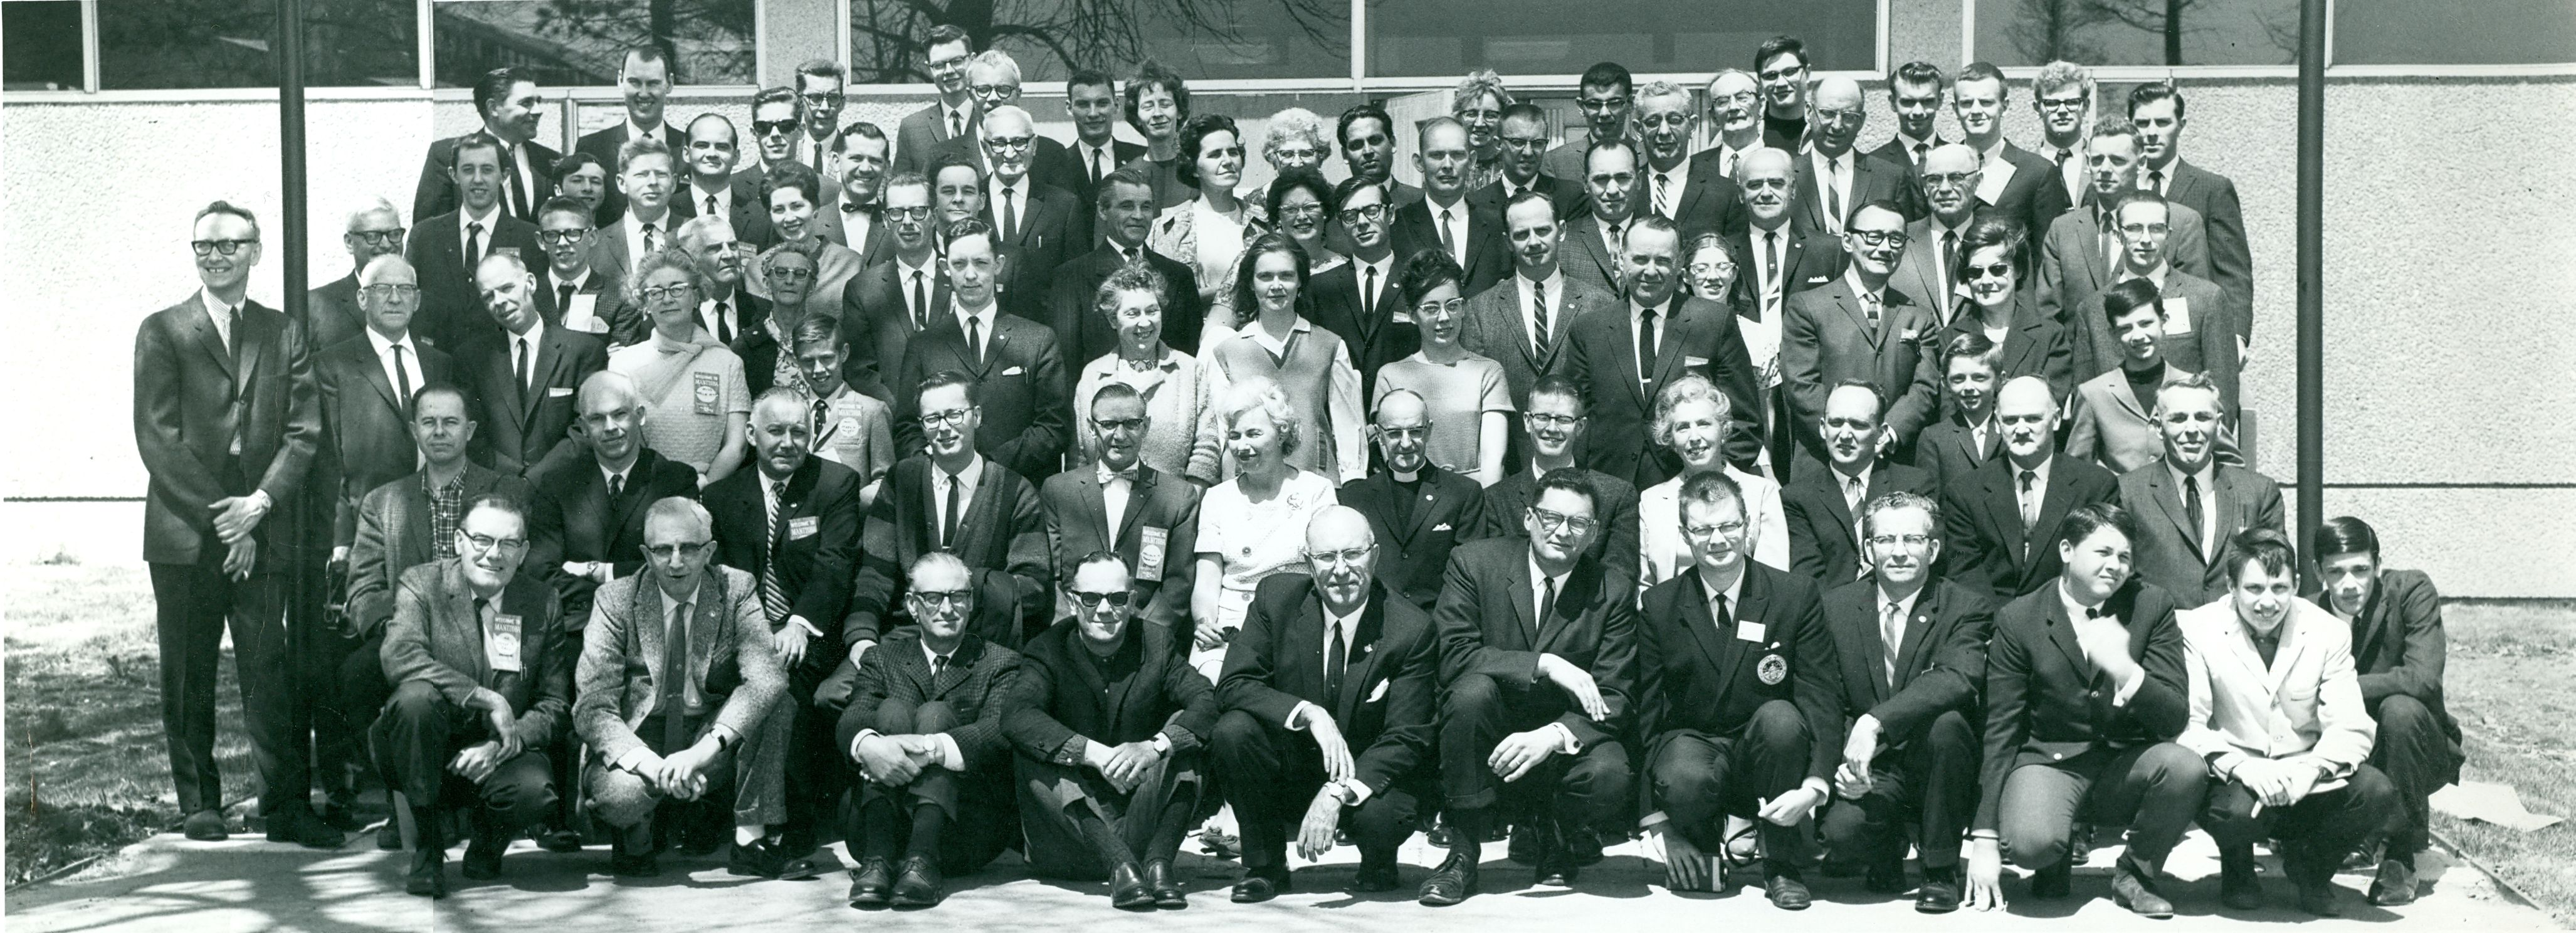 GA Group Photo - 1966